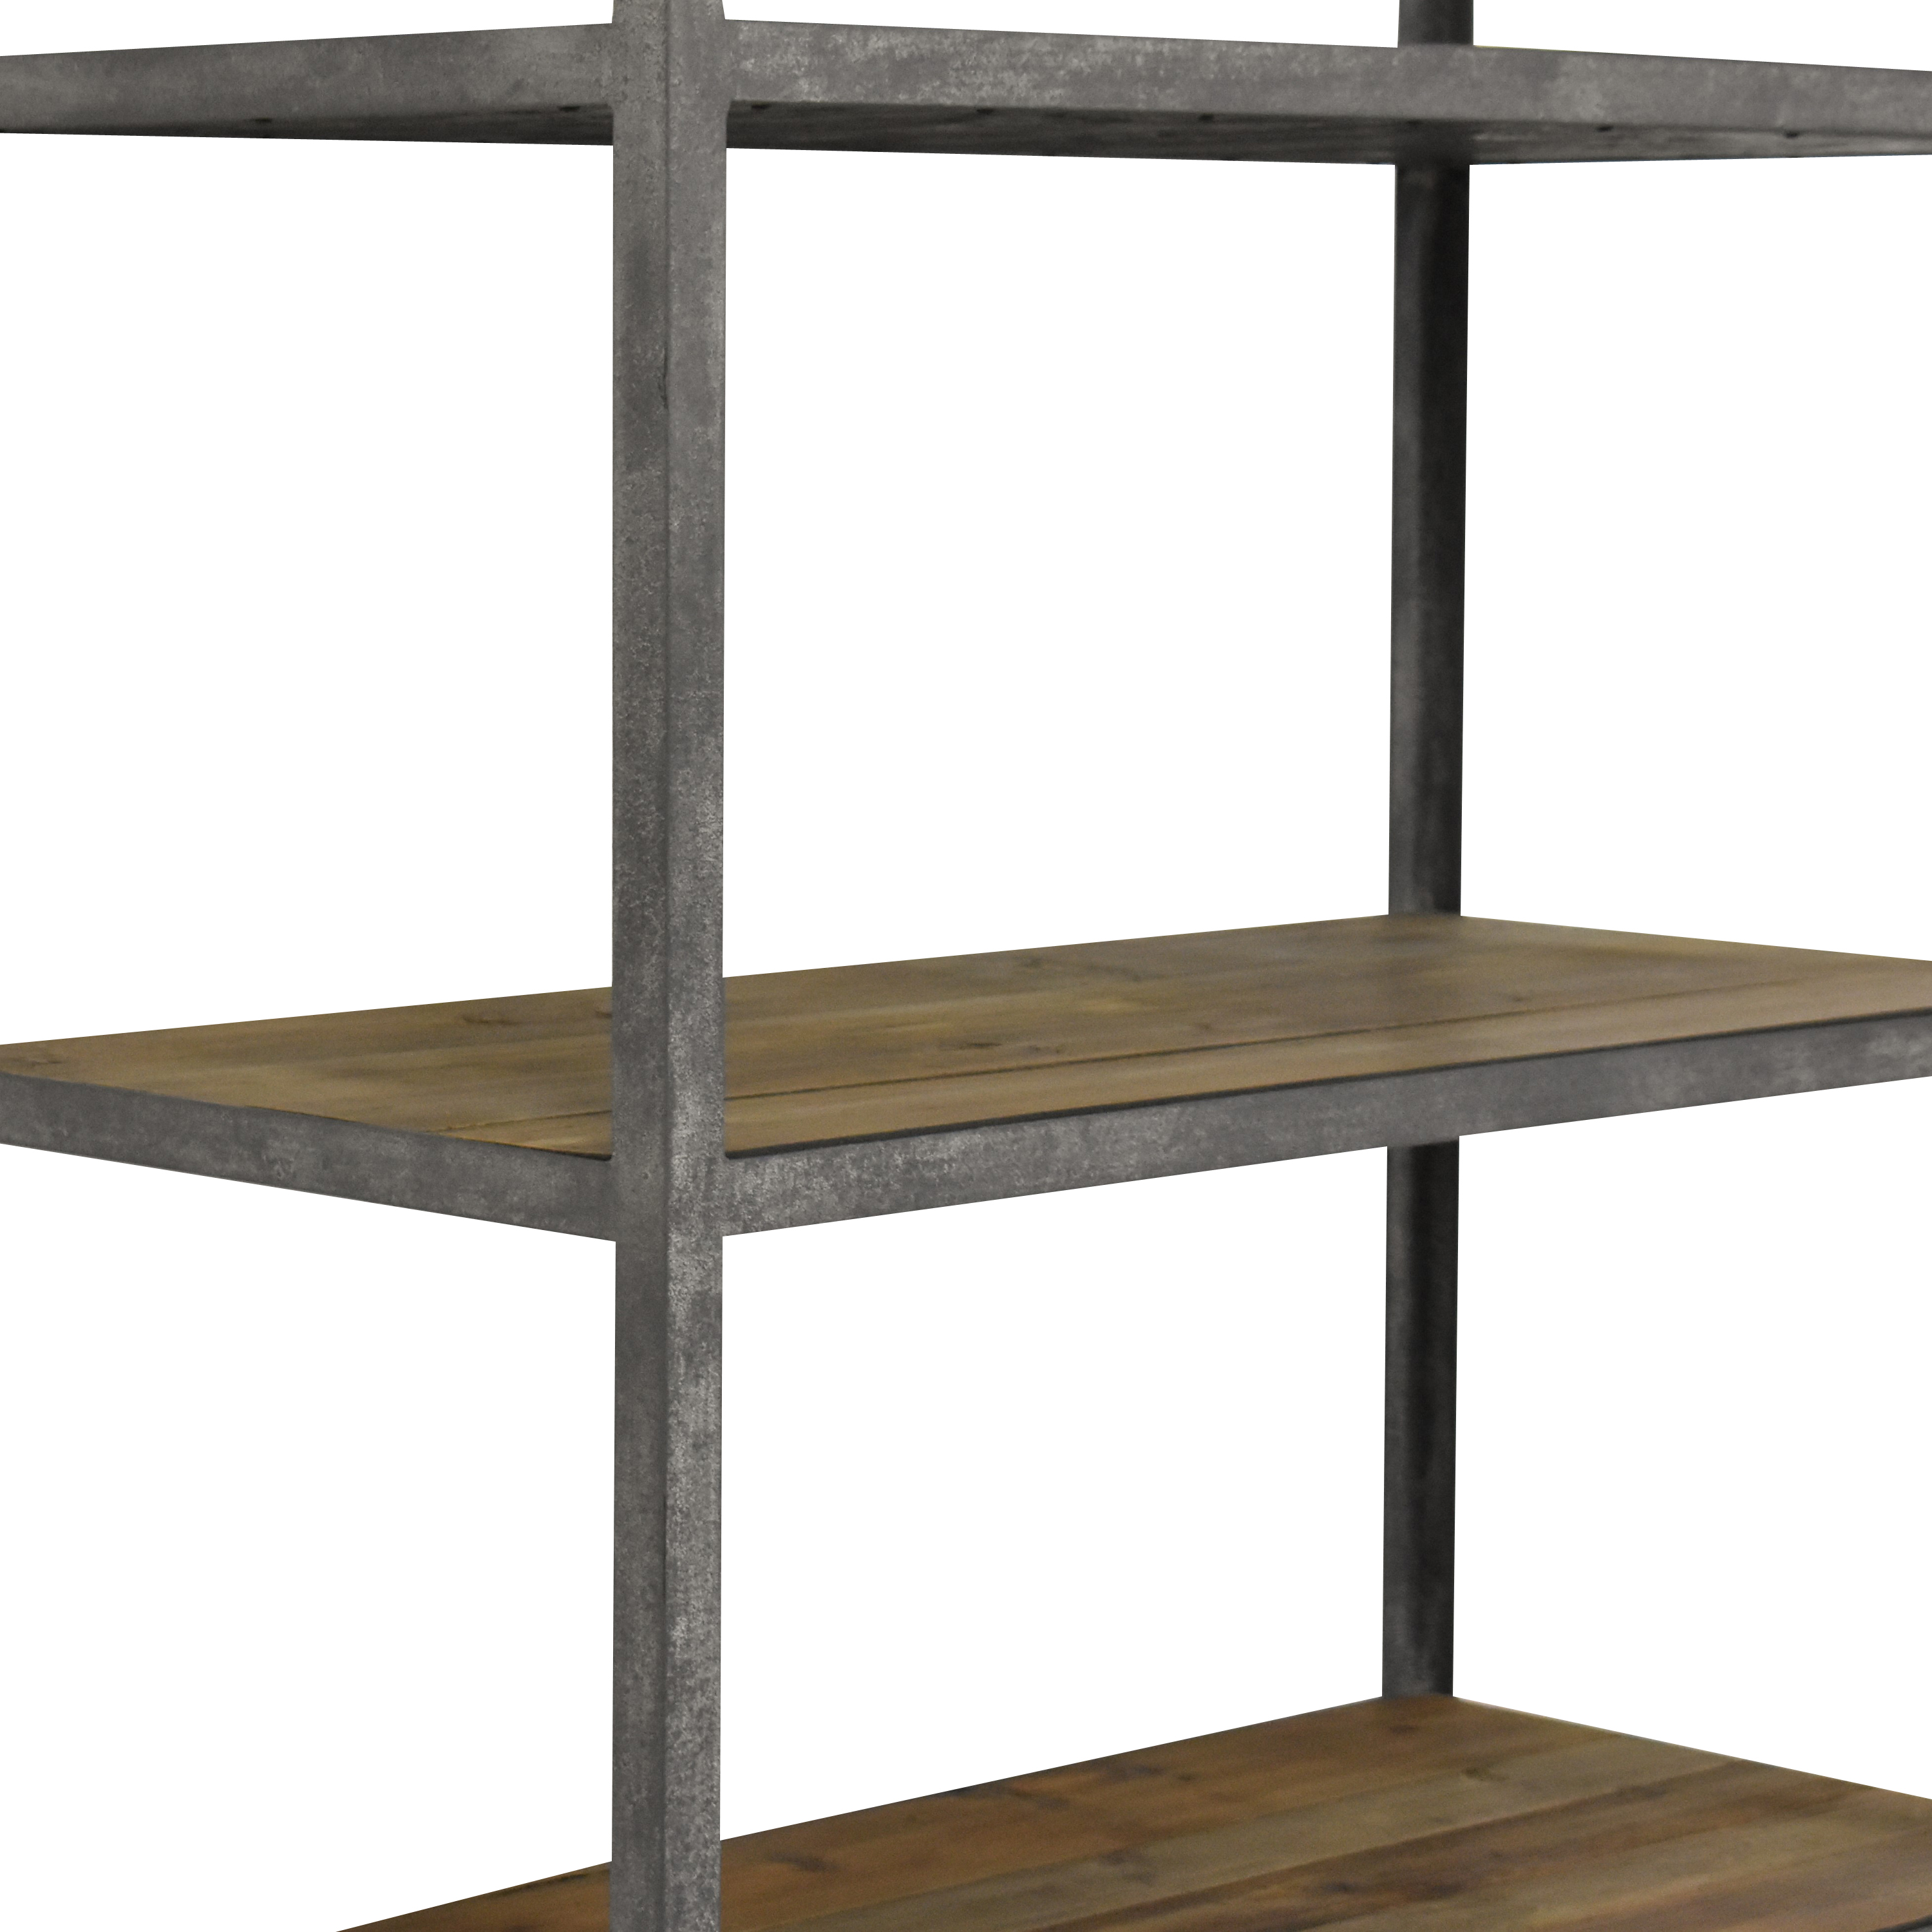 Restoration Hardware Restoration Hardware Vintage Industrial Single Shelving dimensions